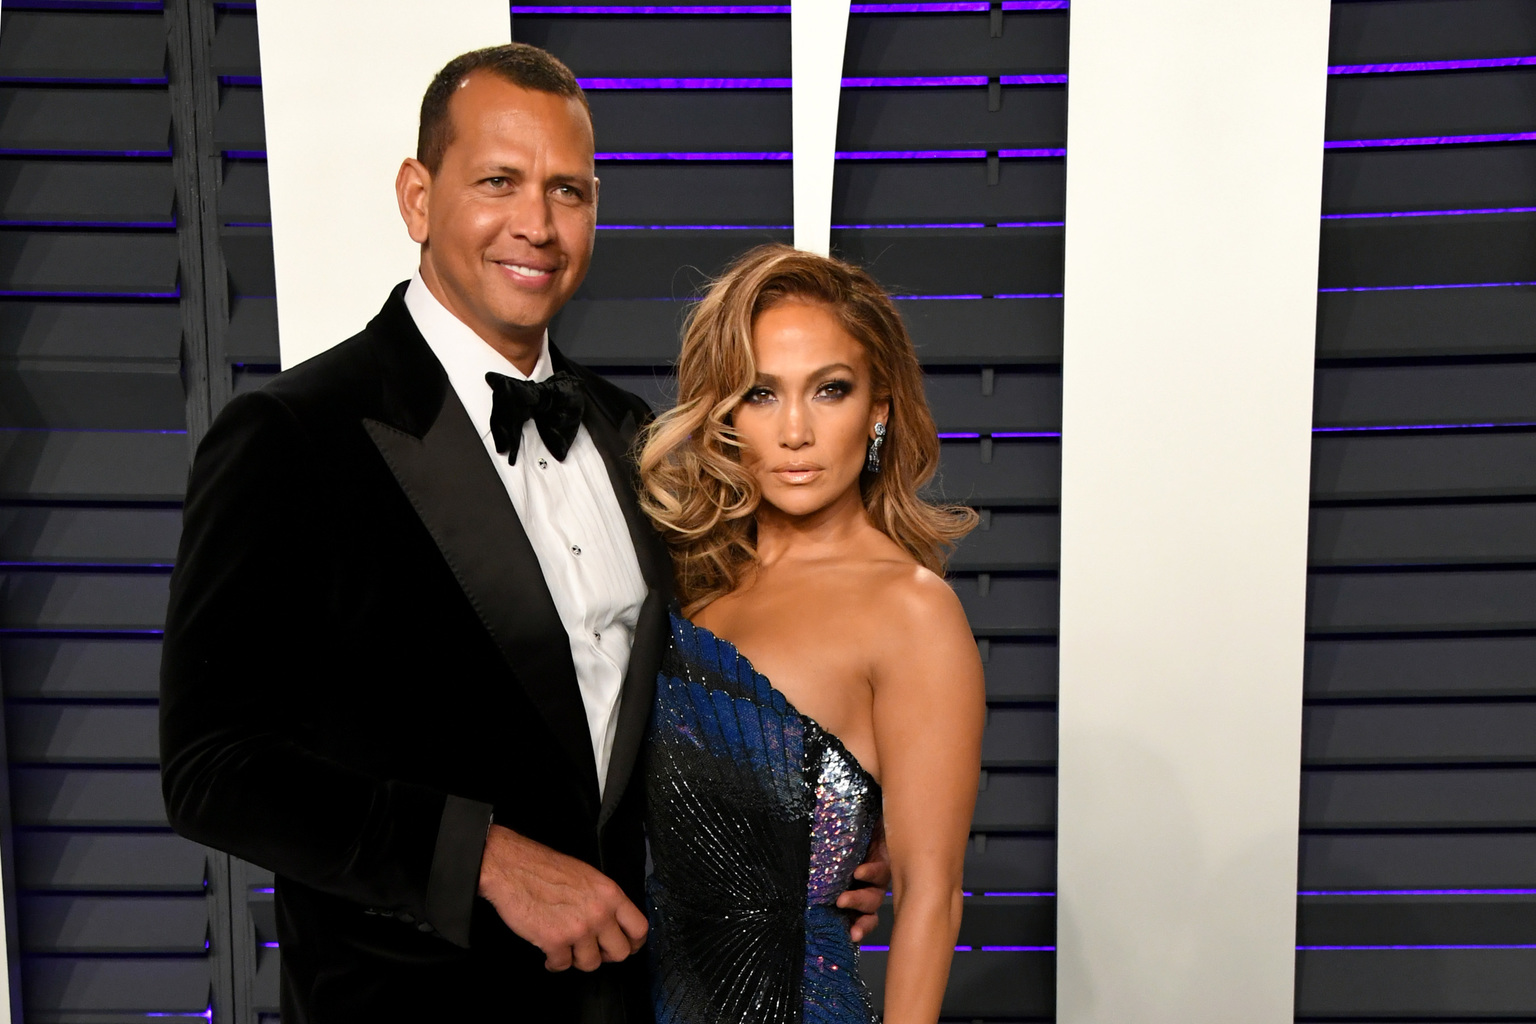 Alex Rodriguez és Jennifer Lopez (Fotó: Getty Images/Jon Kopaloff)